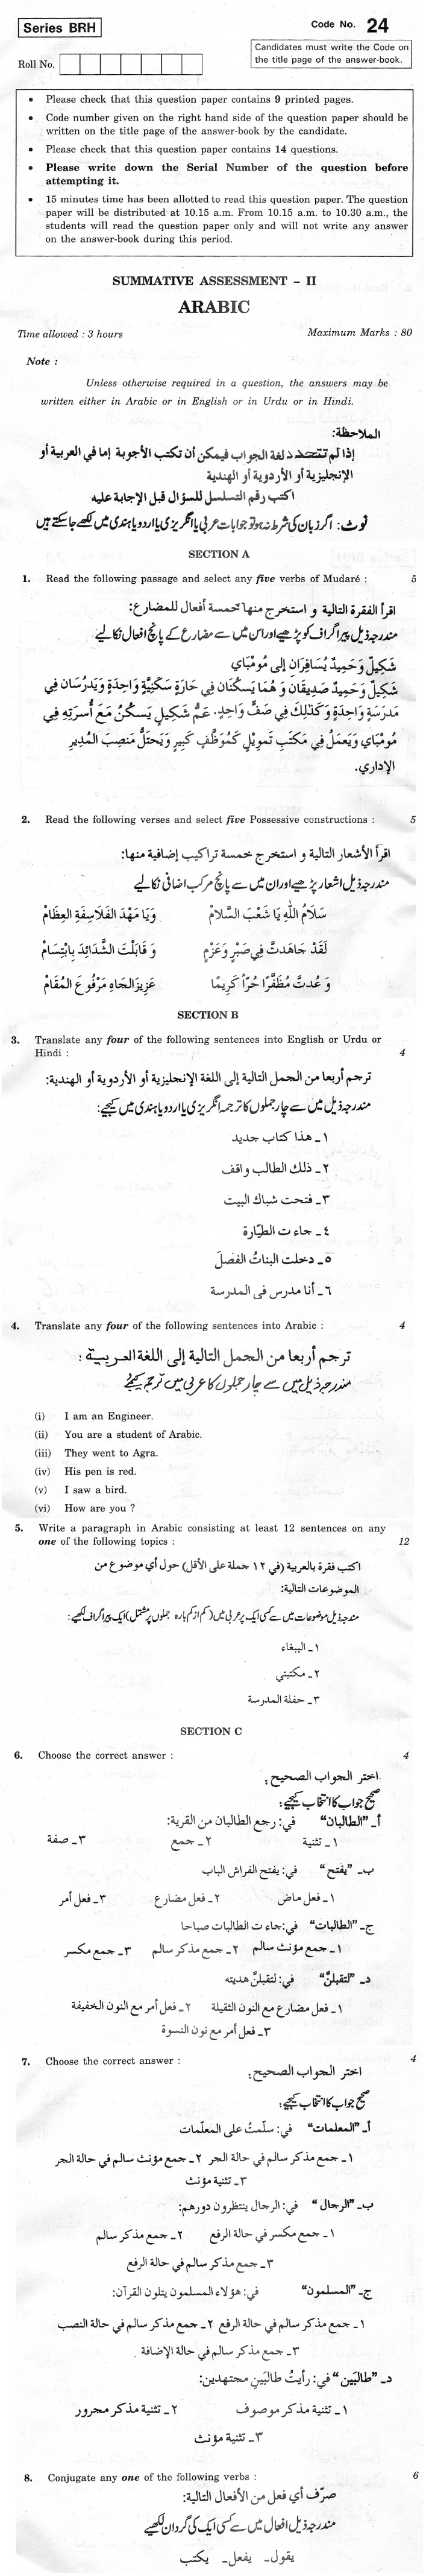 CBSE Class X Previous Year Question Papers 2012 Arabic